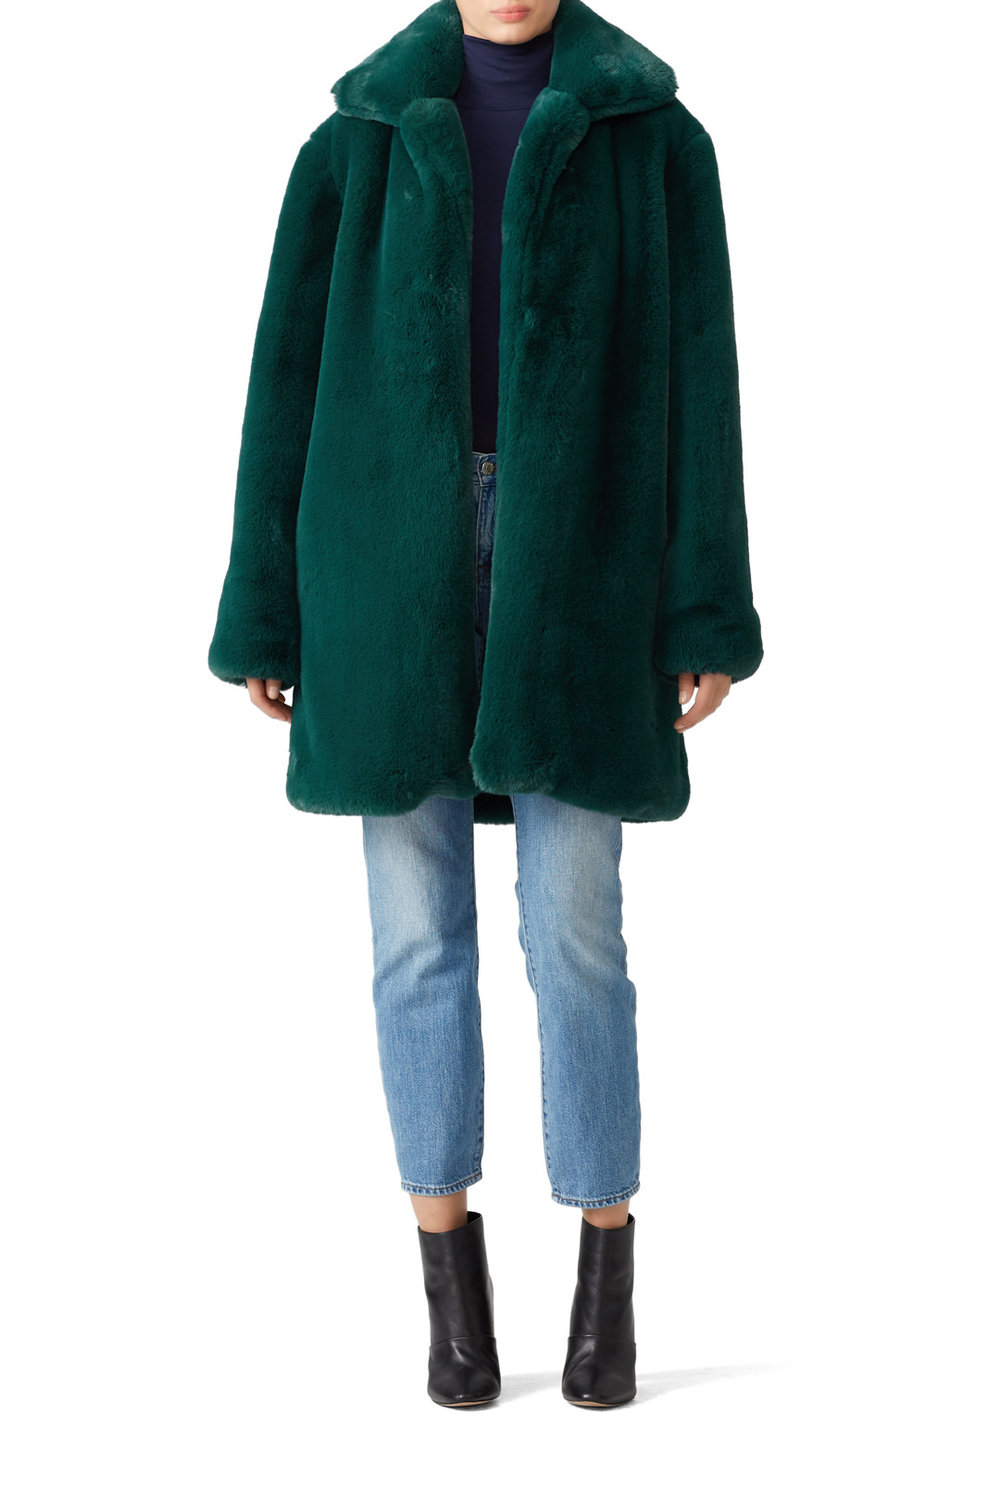 Somedays Lovin Emerald Dreaming Faux Fur Coat - Green. Warm. Cozy. Checks all the boxes